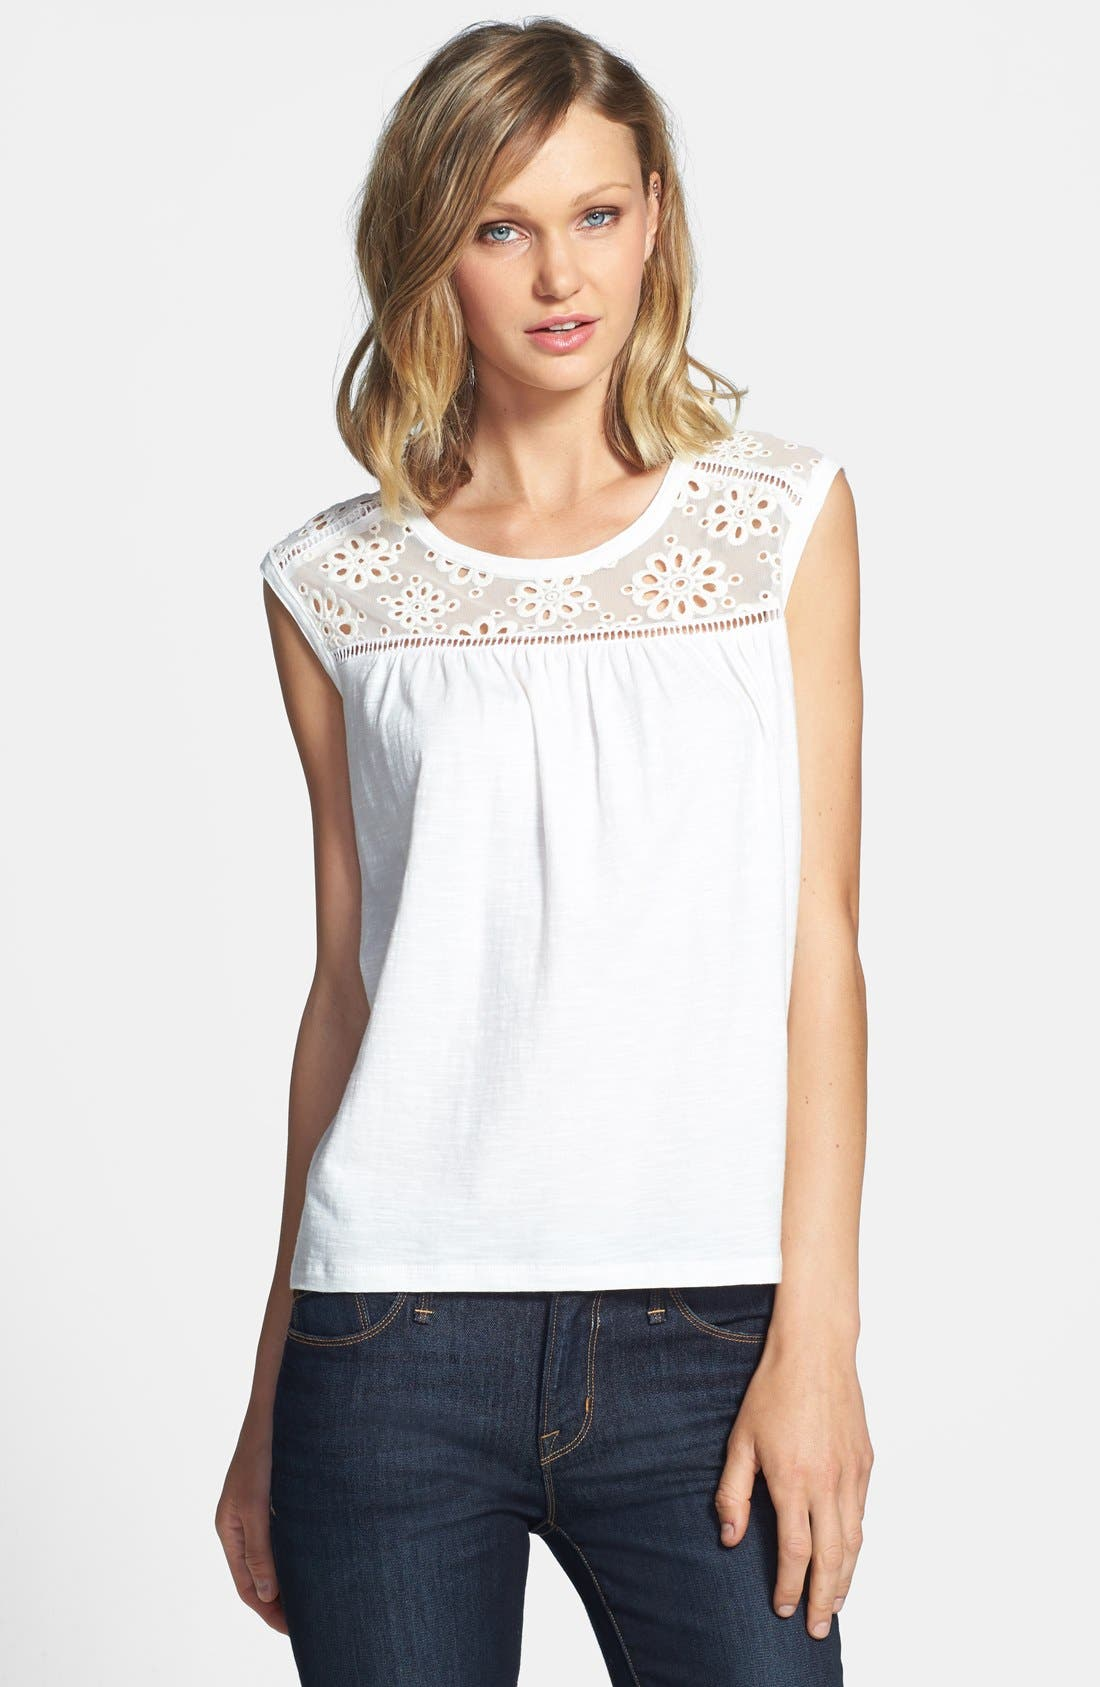 Main Image - Two by Vince Camuto Eyelet Mesh Top